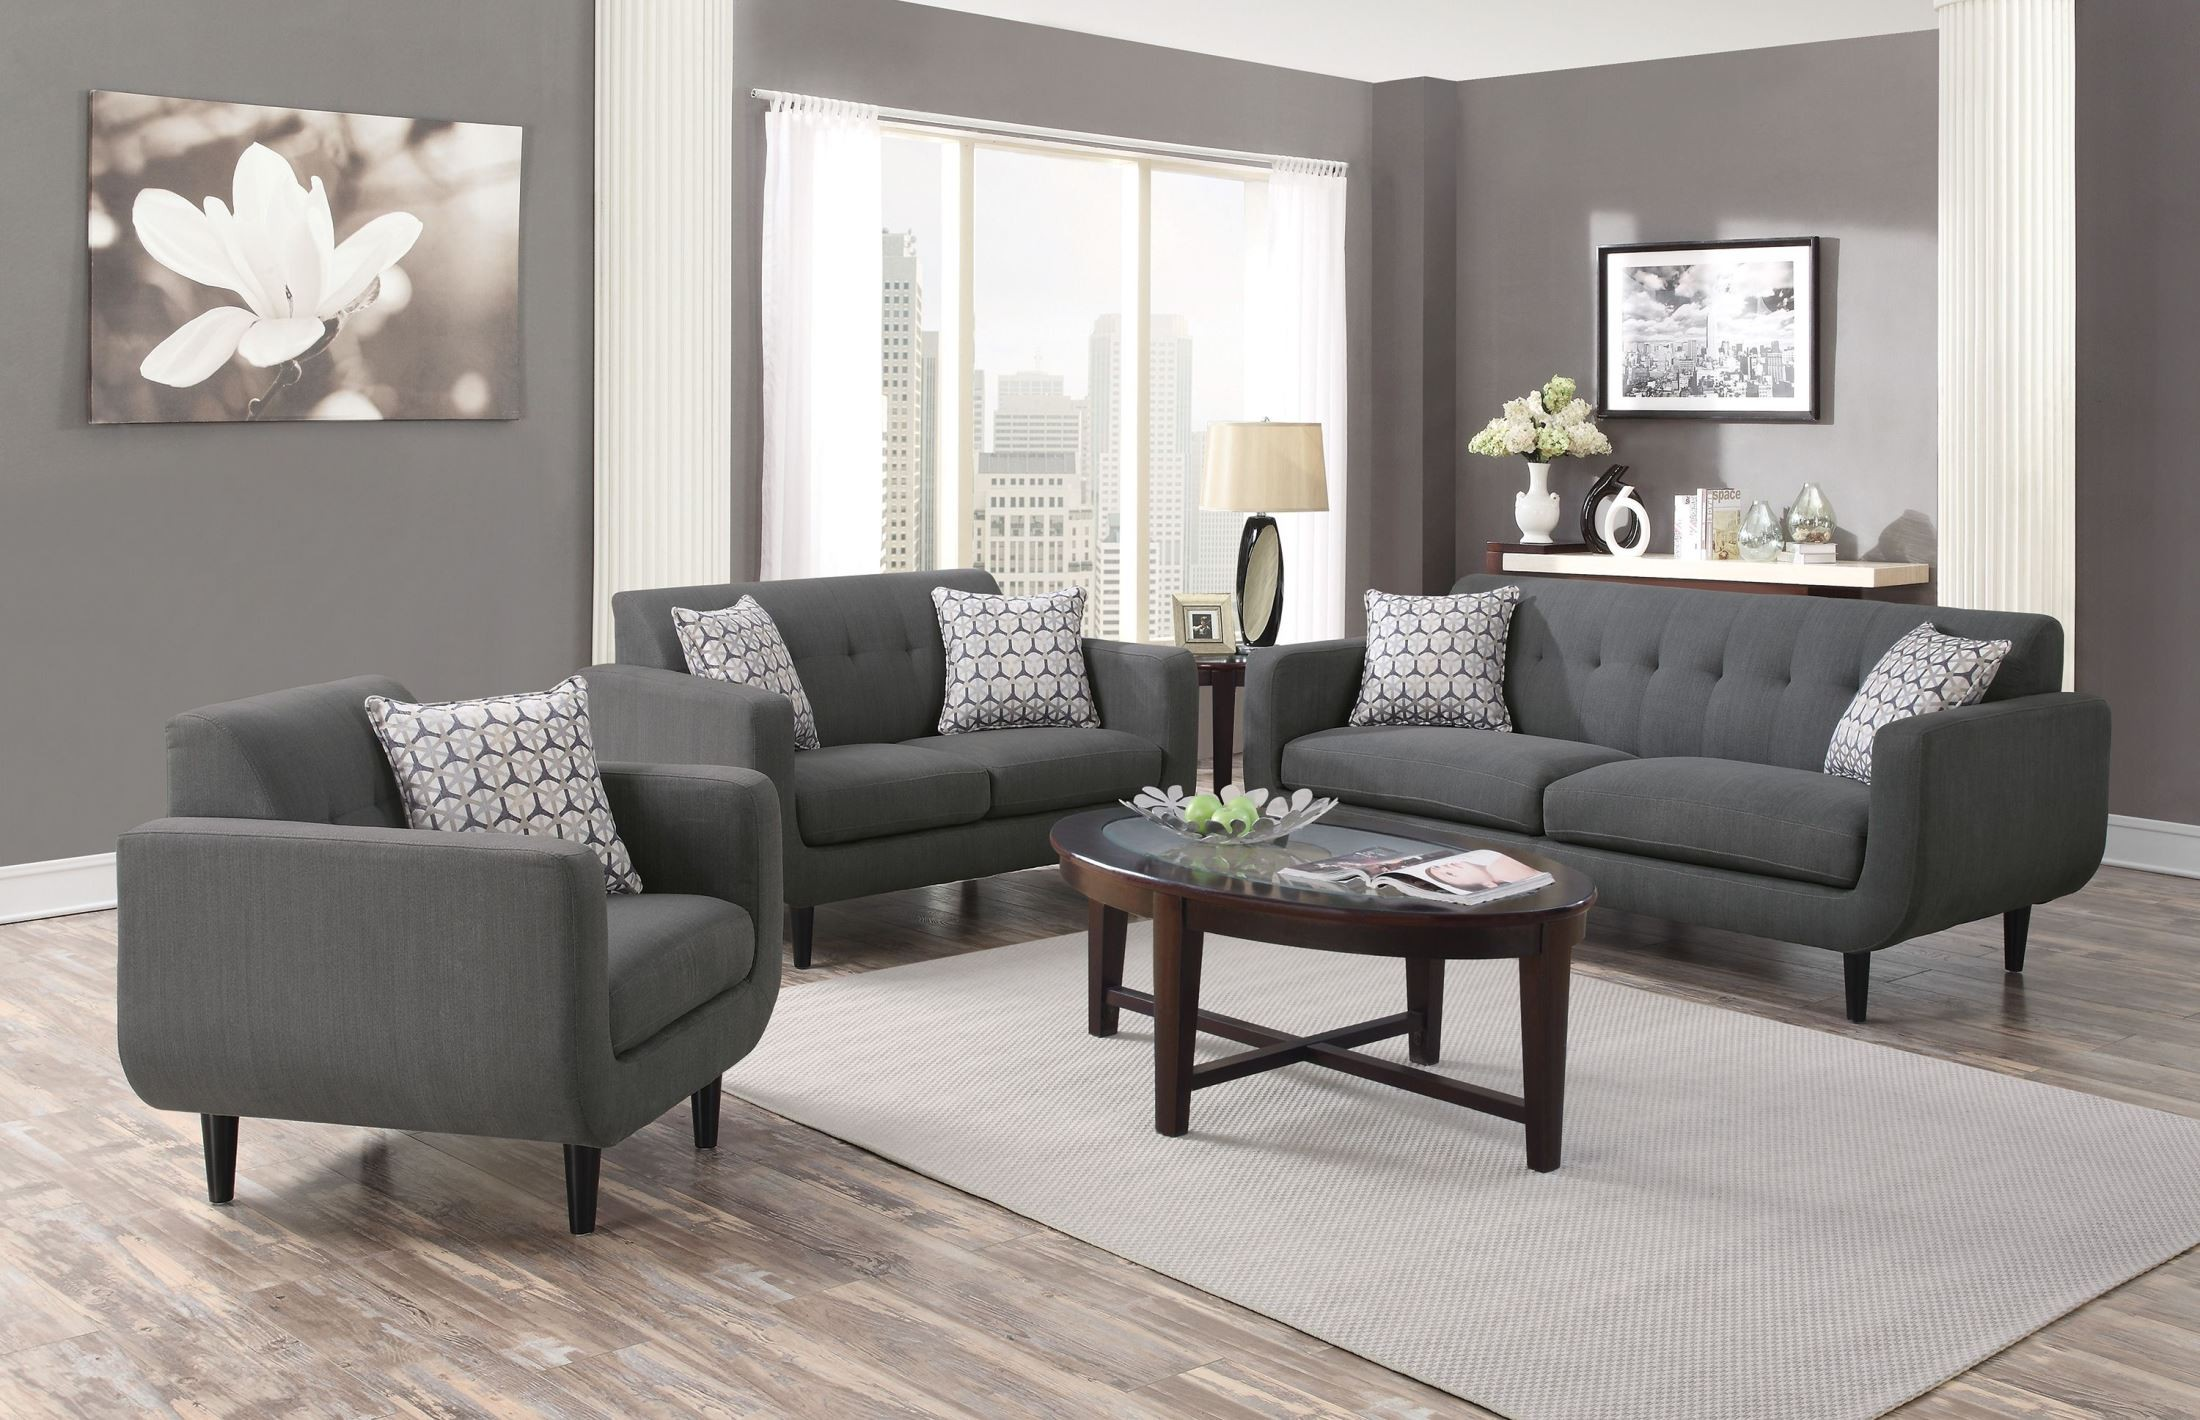 Stansall grey living room set 505201 coaster for Family room sofa sets